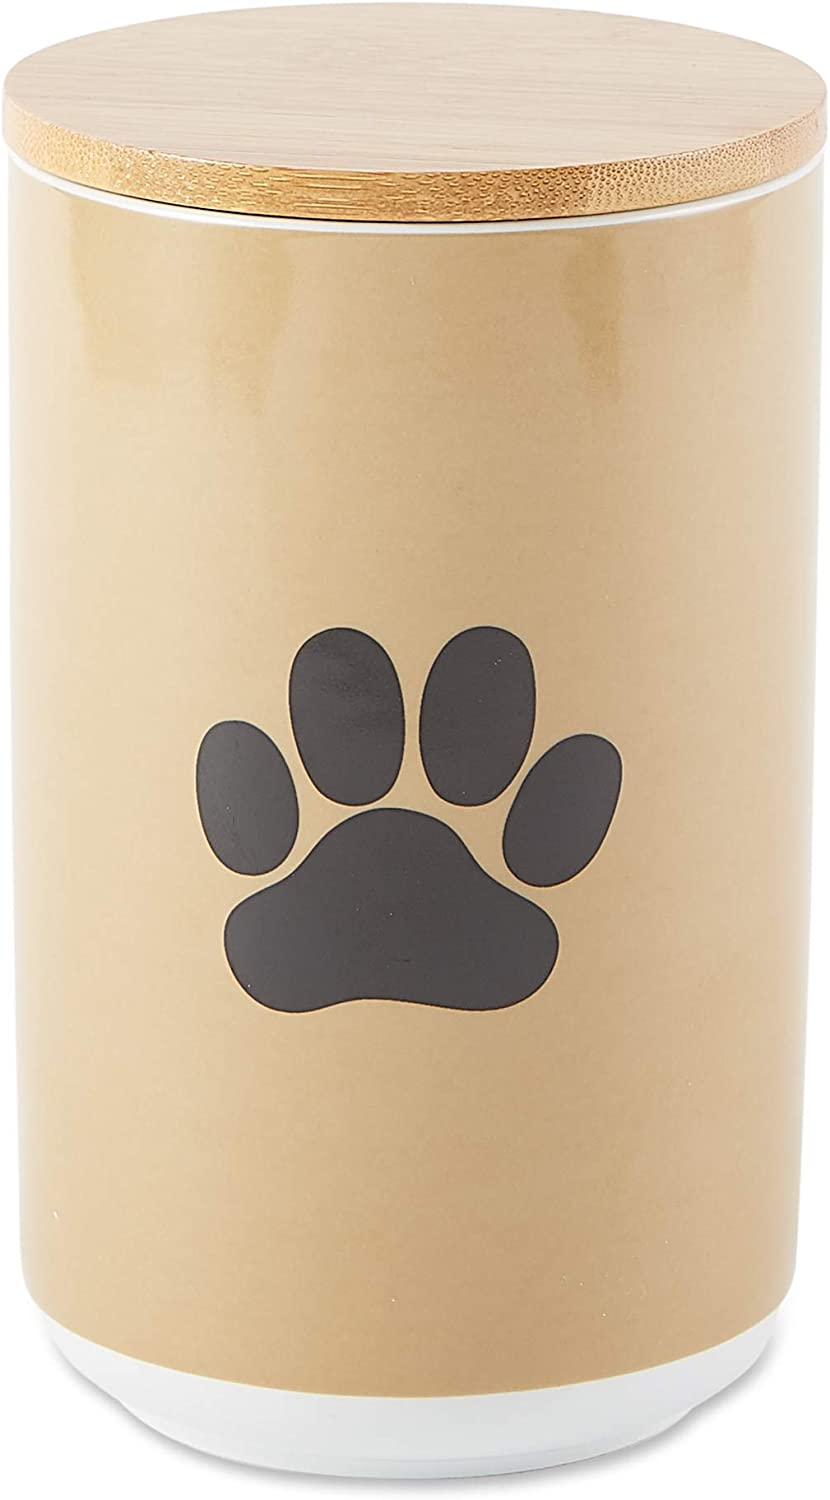 Bone Dry Ceramic Pet Collection, Canister, Taupe Paw